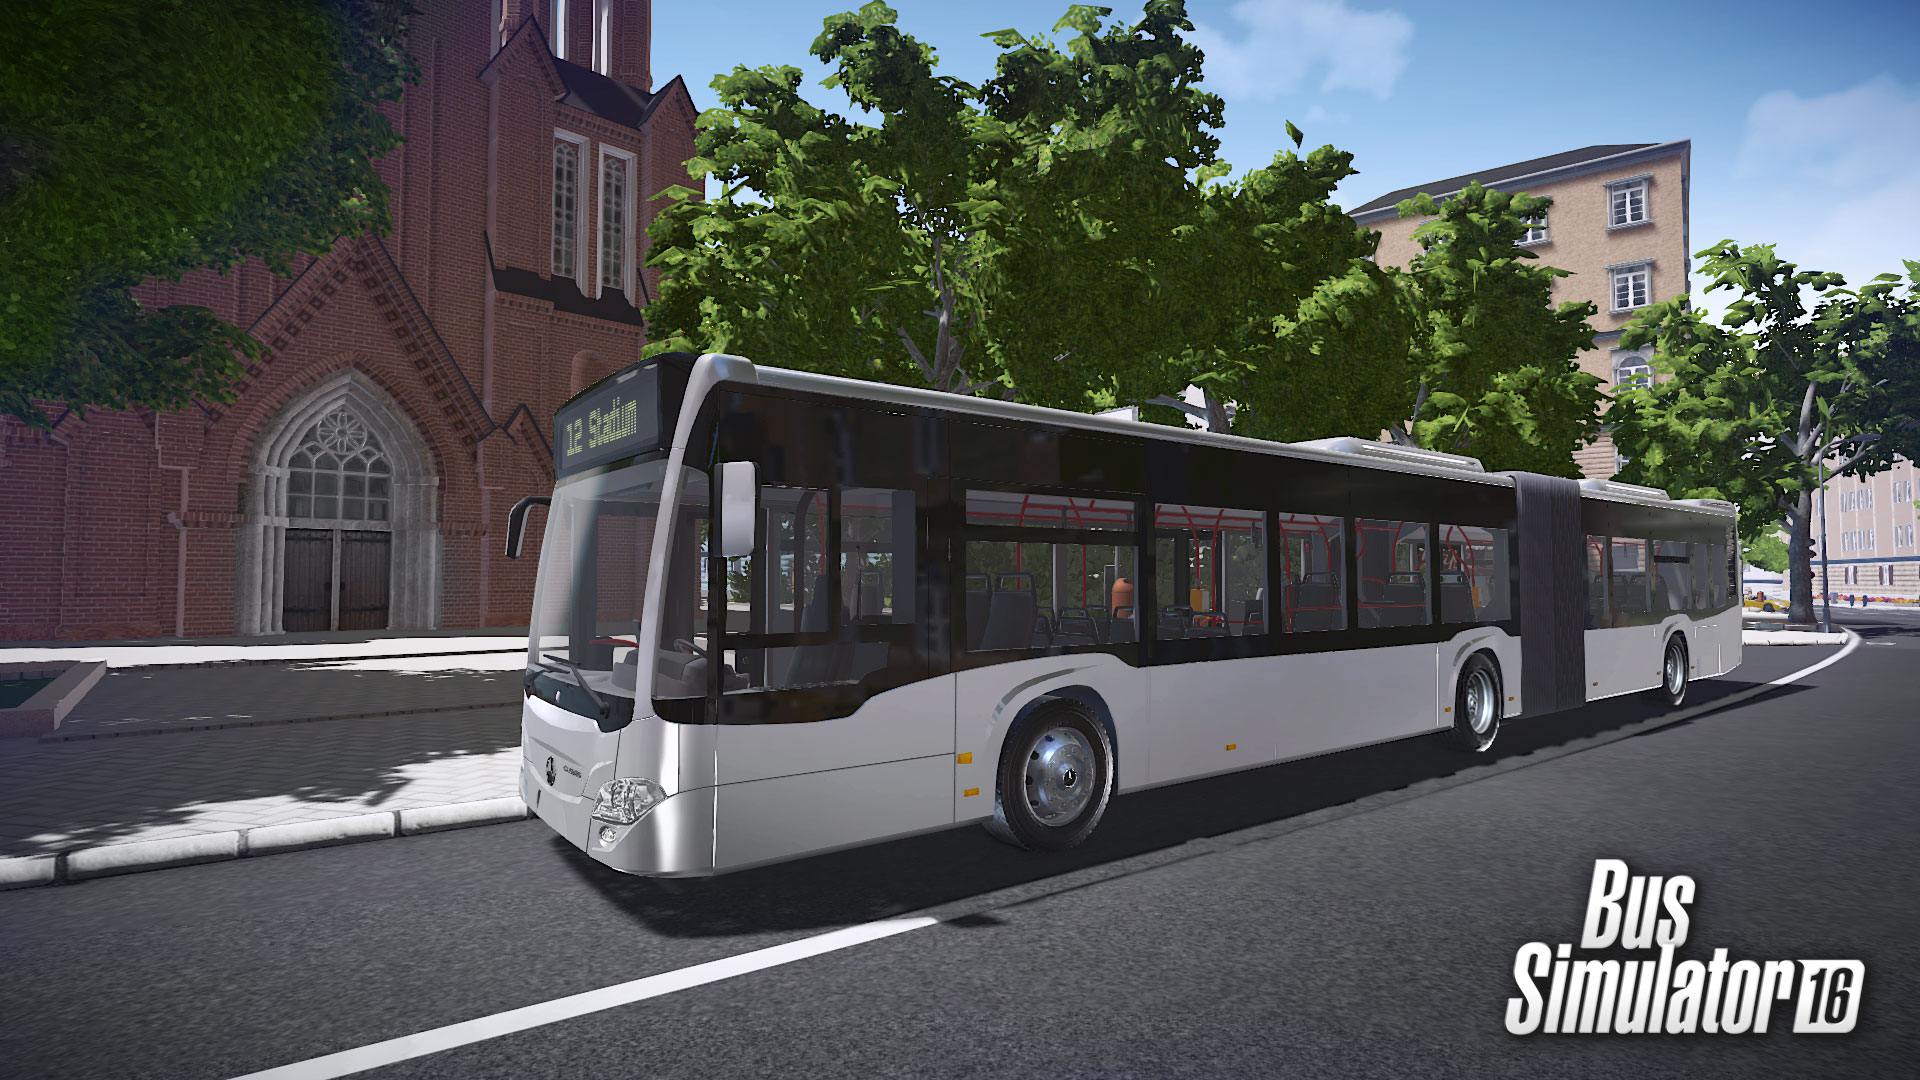 Bus simulator 16 mercedes benz citaro buy and download for Mercedes benz busses